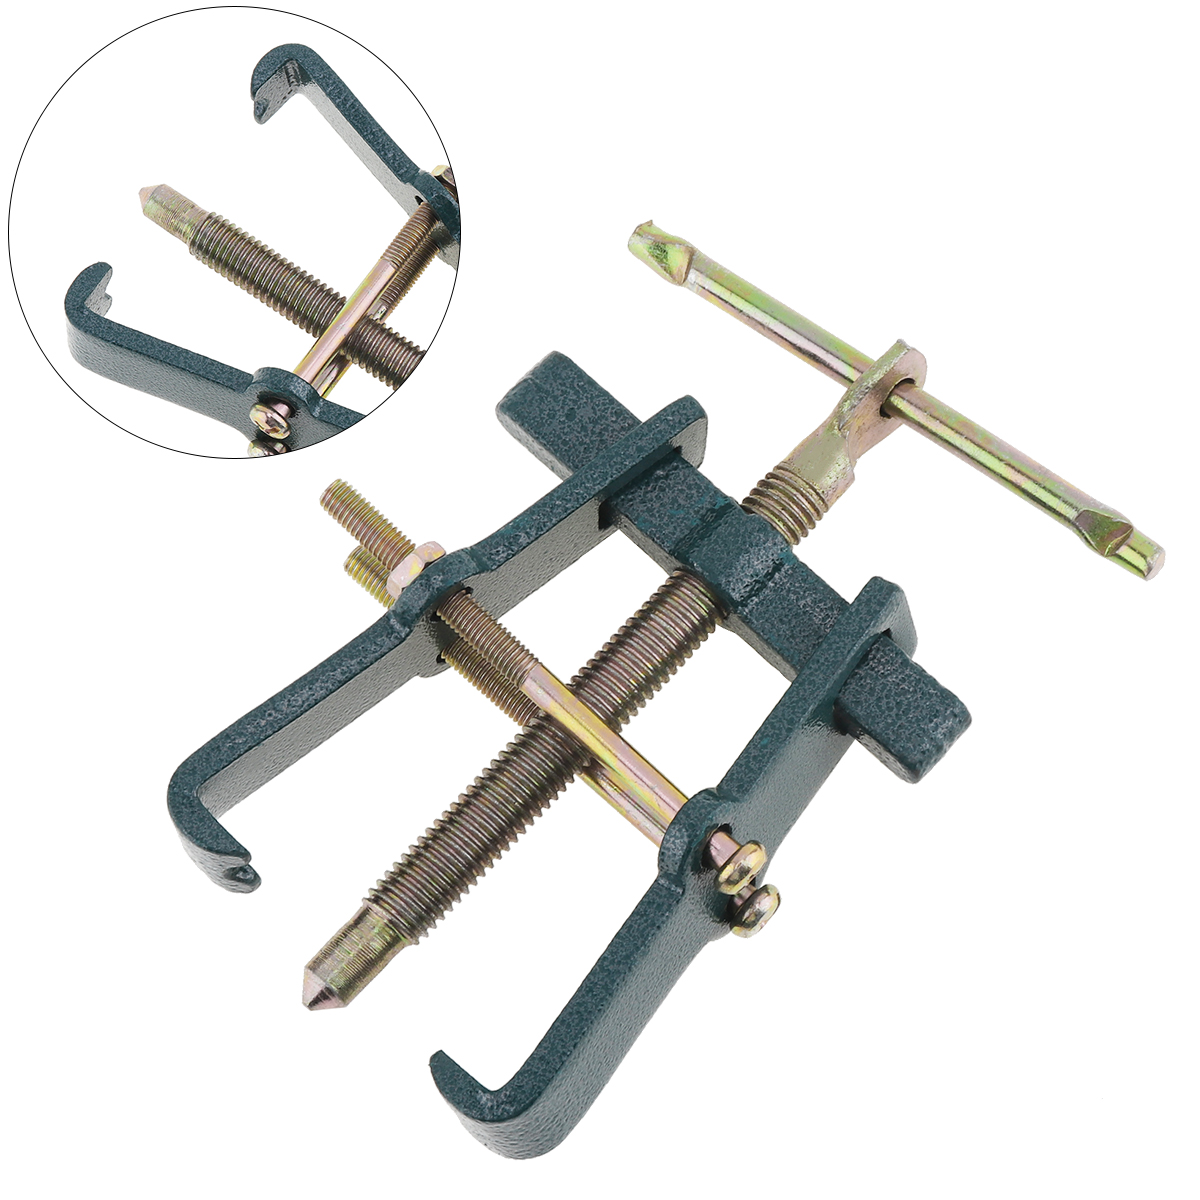 3 Inch Two-claw Puller Separate Lifting Device Multi-purpose Pull Strengthen Bearing Rama for Auto <font><b>Mechanic</b></font> Hand <font><b>Tools</b></font> hot image